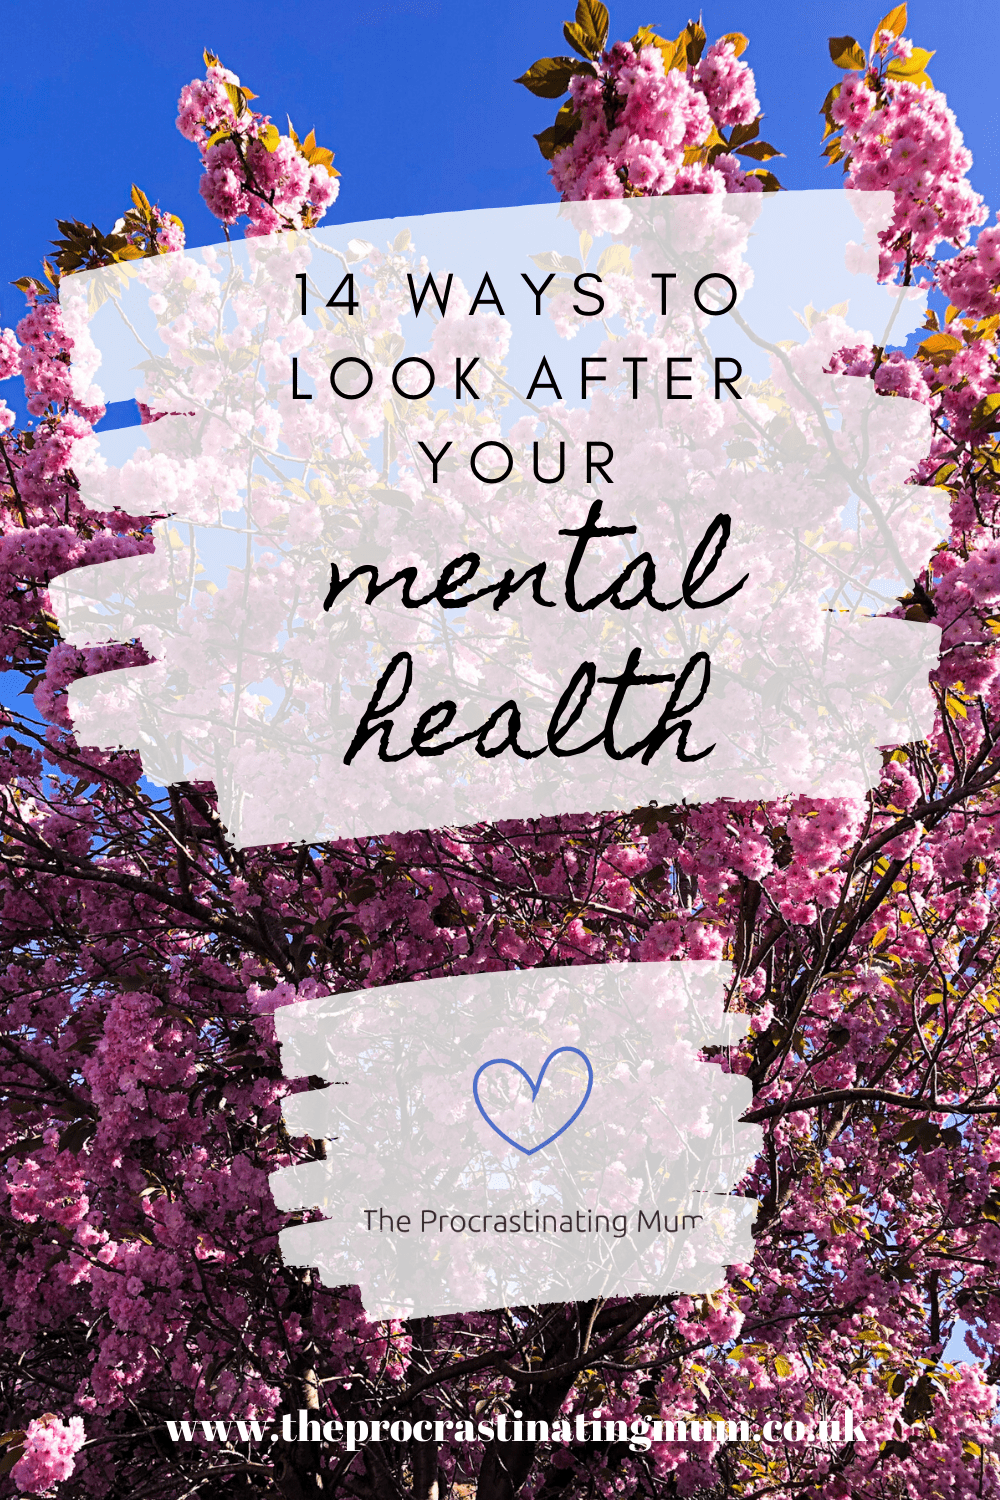 14 ways to look after your mental health